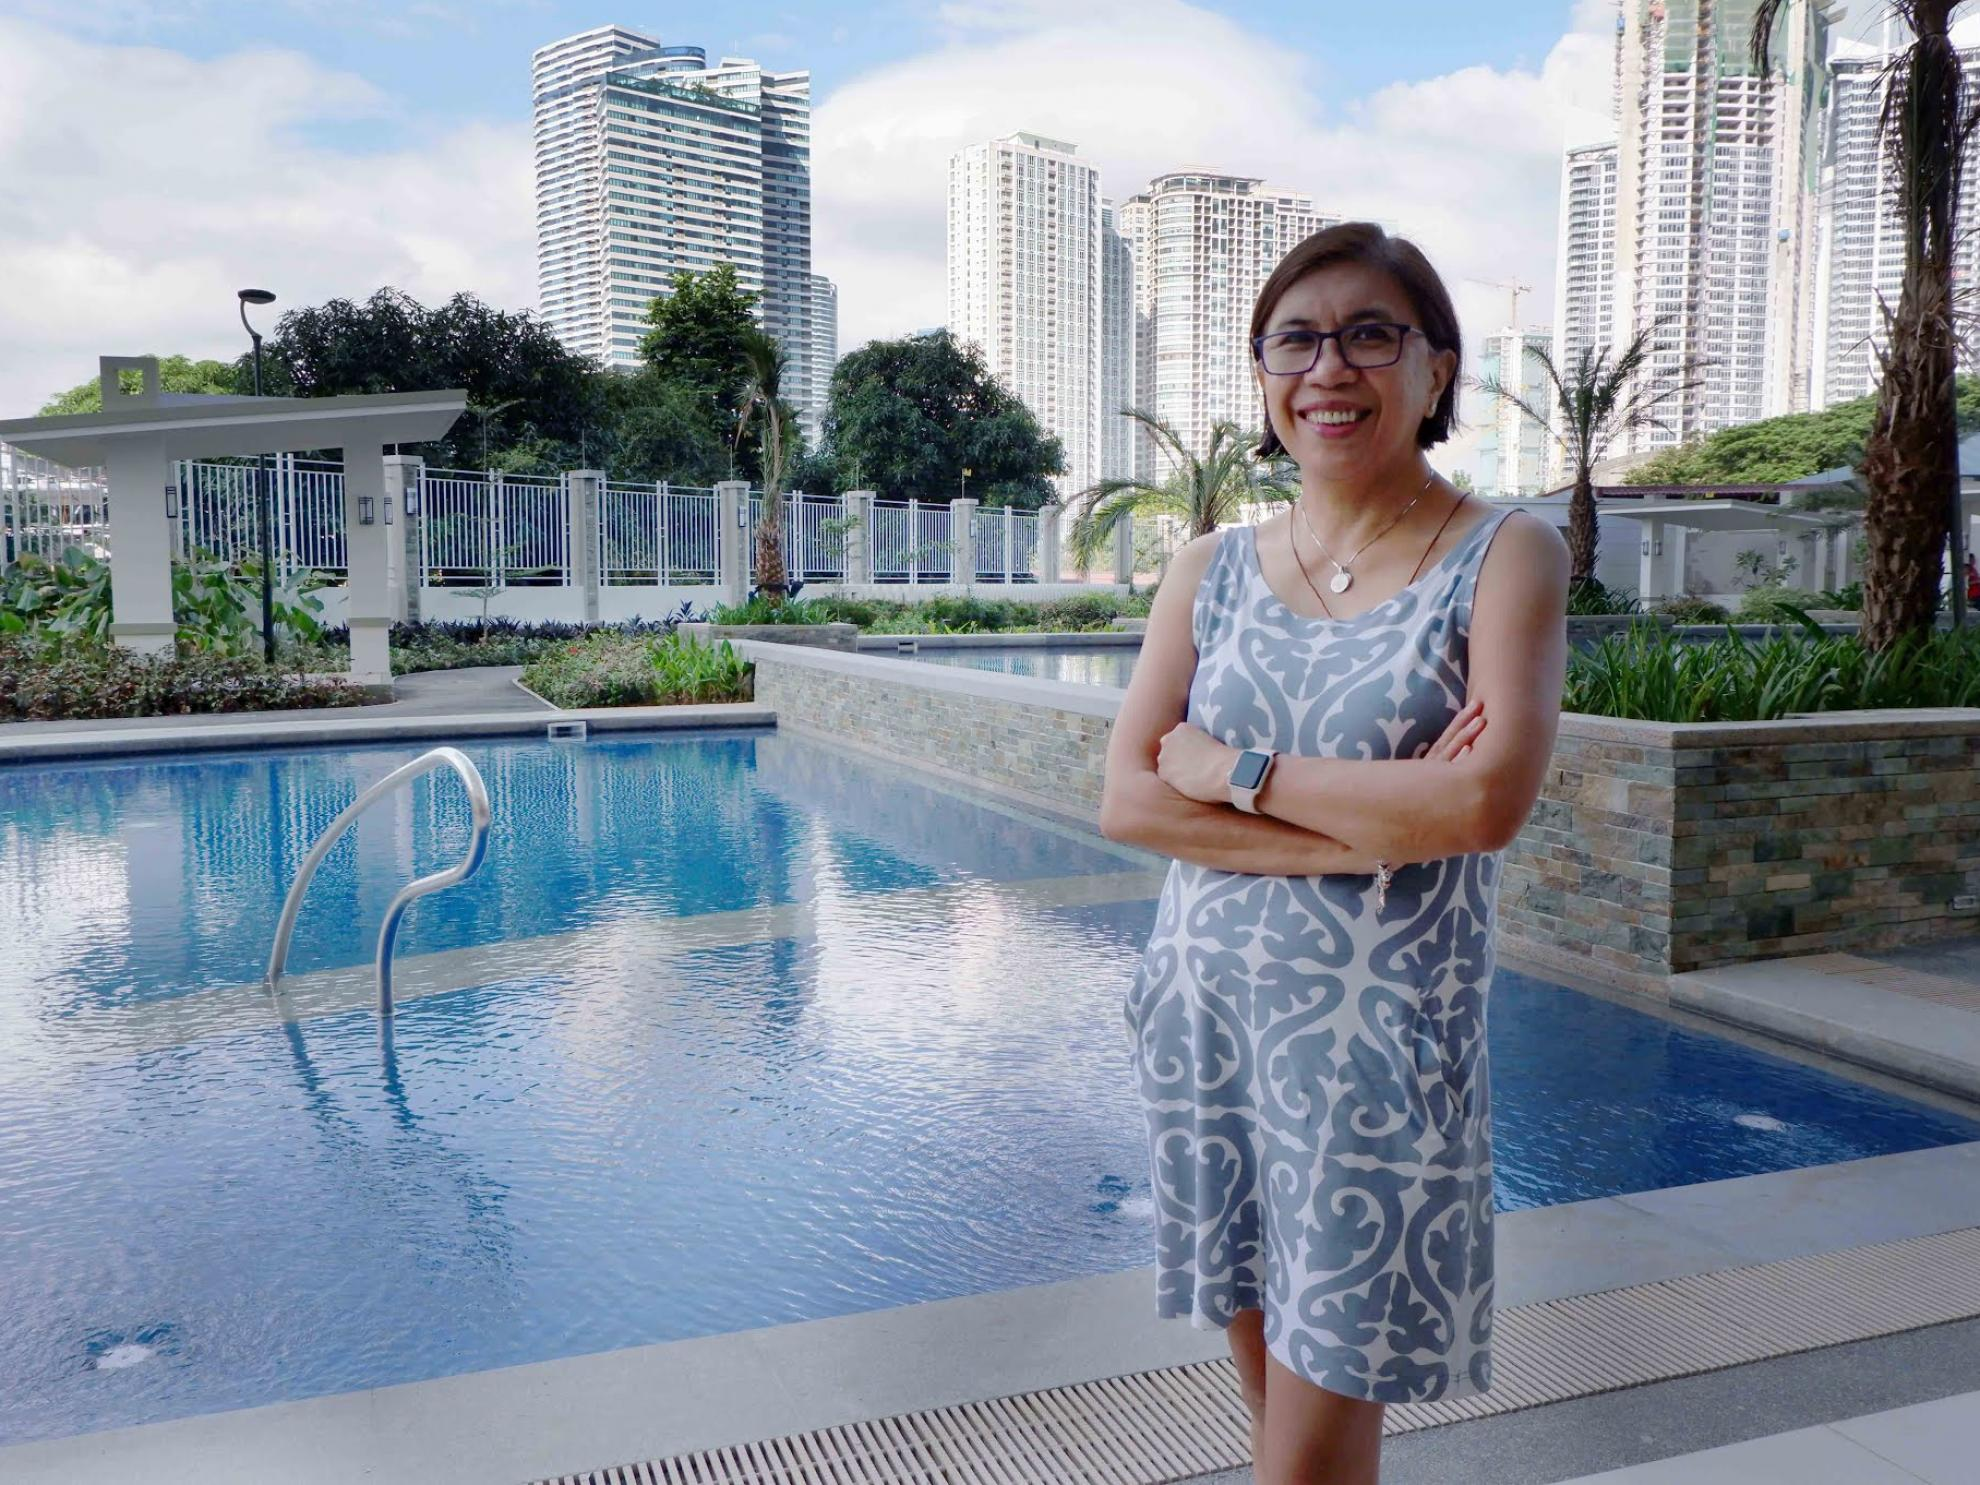 DMCI Homes' Brio Tower 'goes beyond expectations' of unit owner